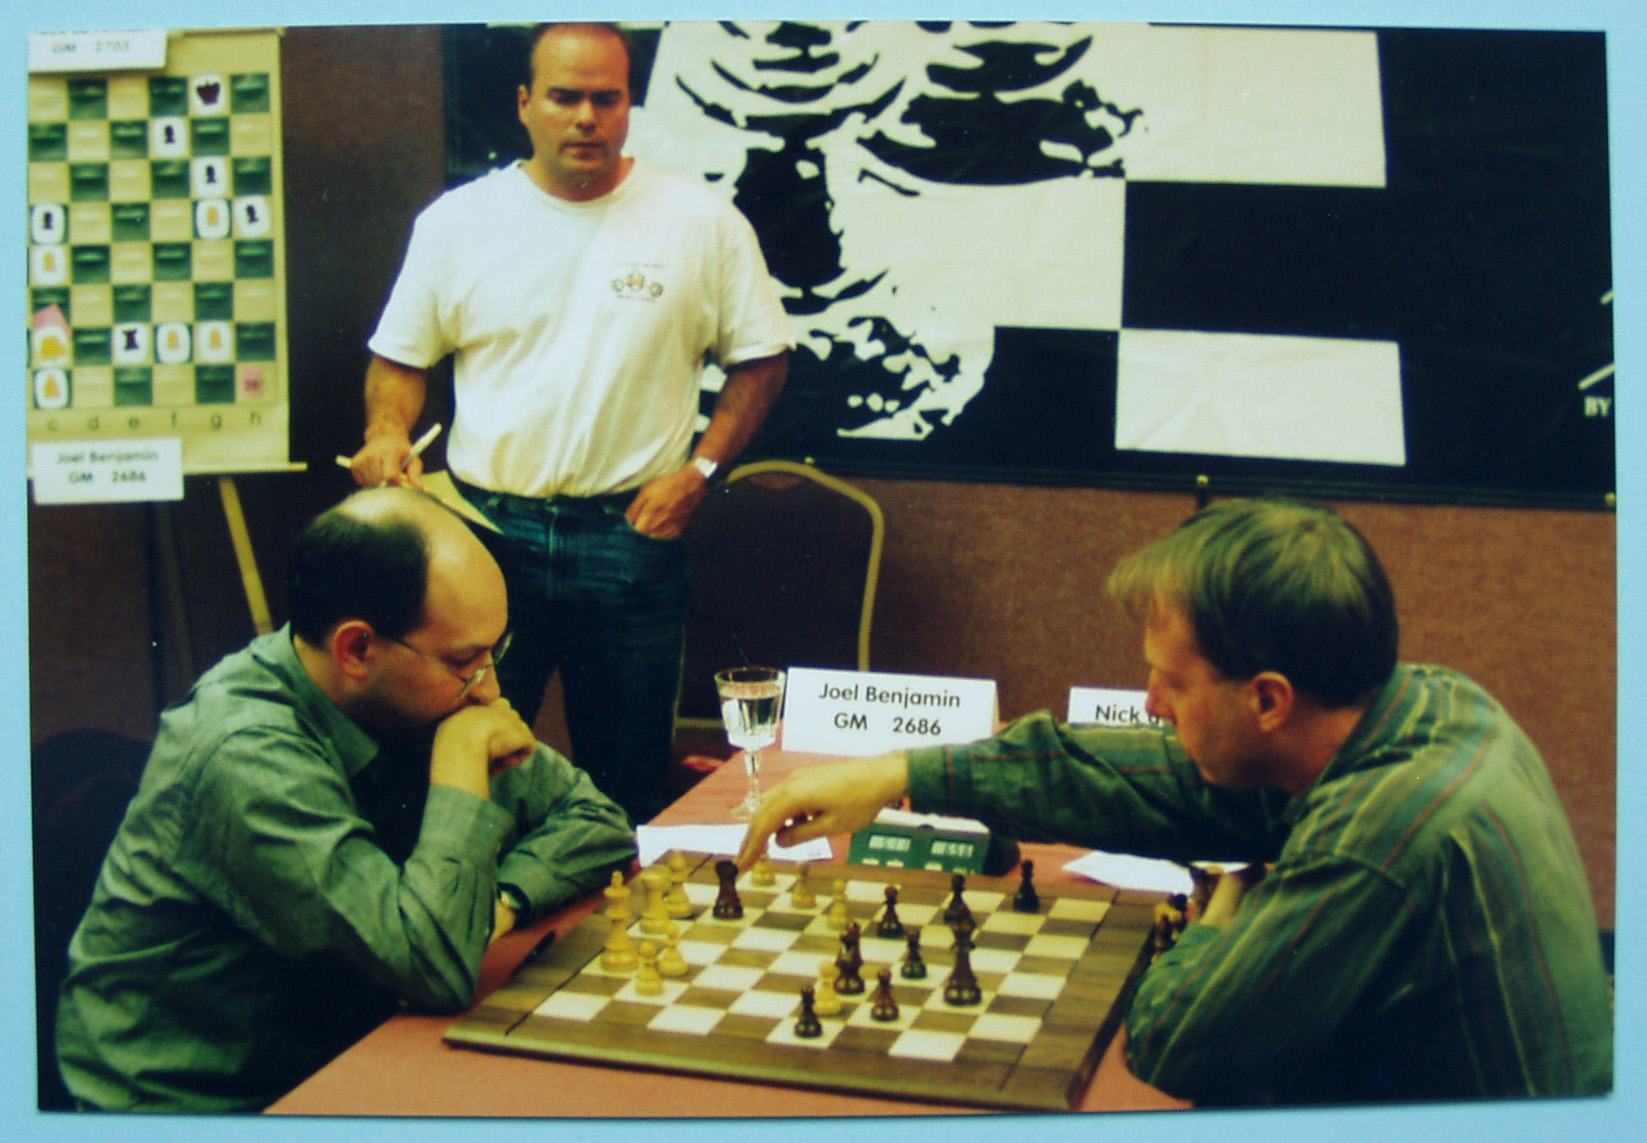 1998 U S  Championships – Chess Academy of Denver